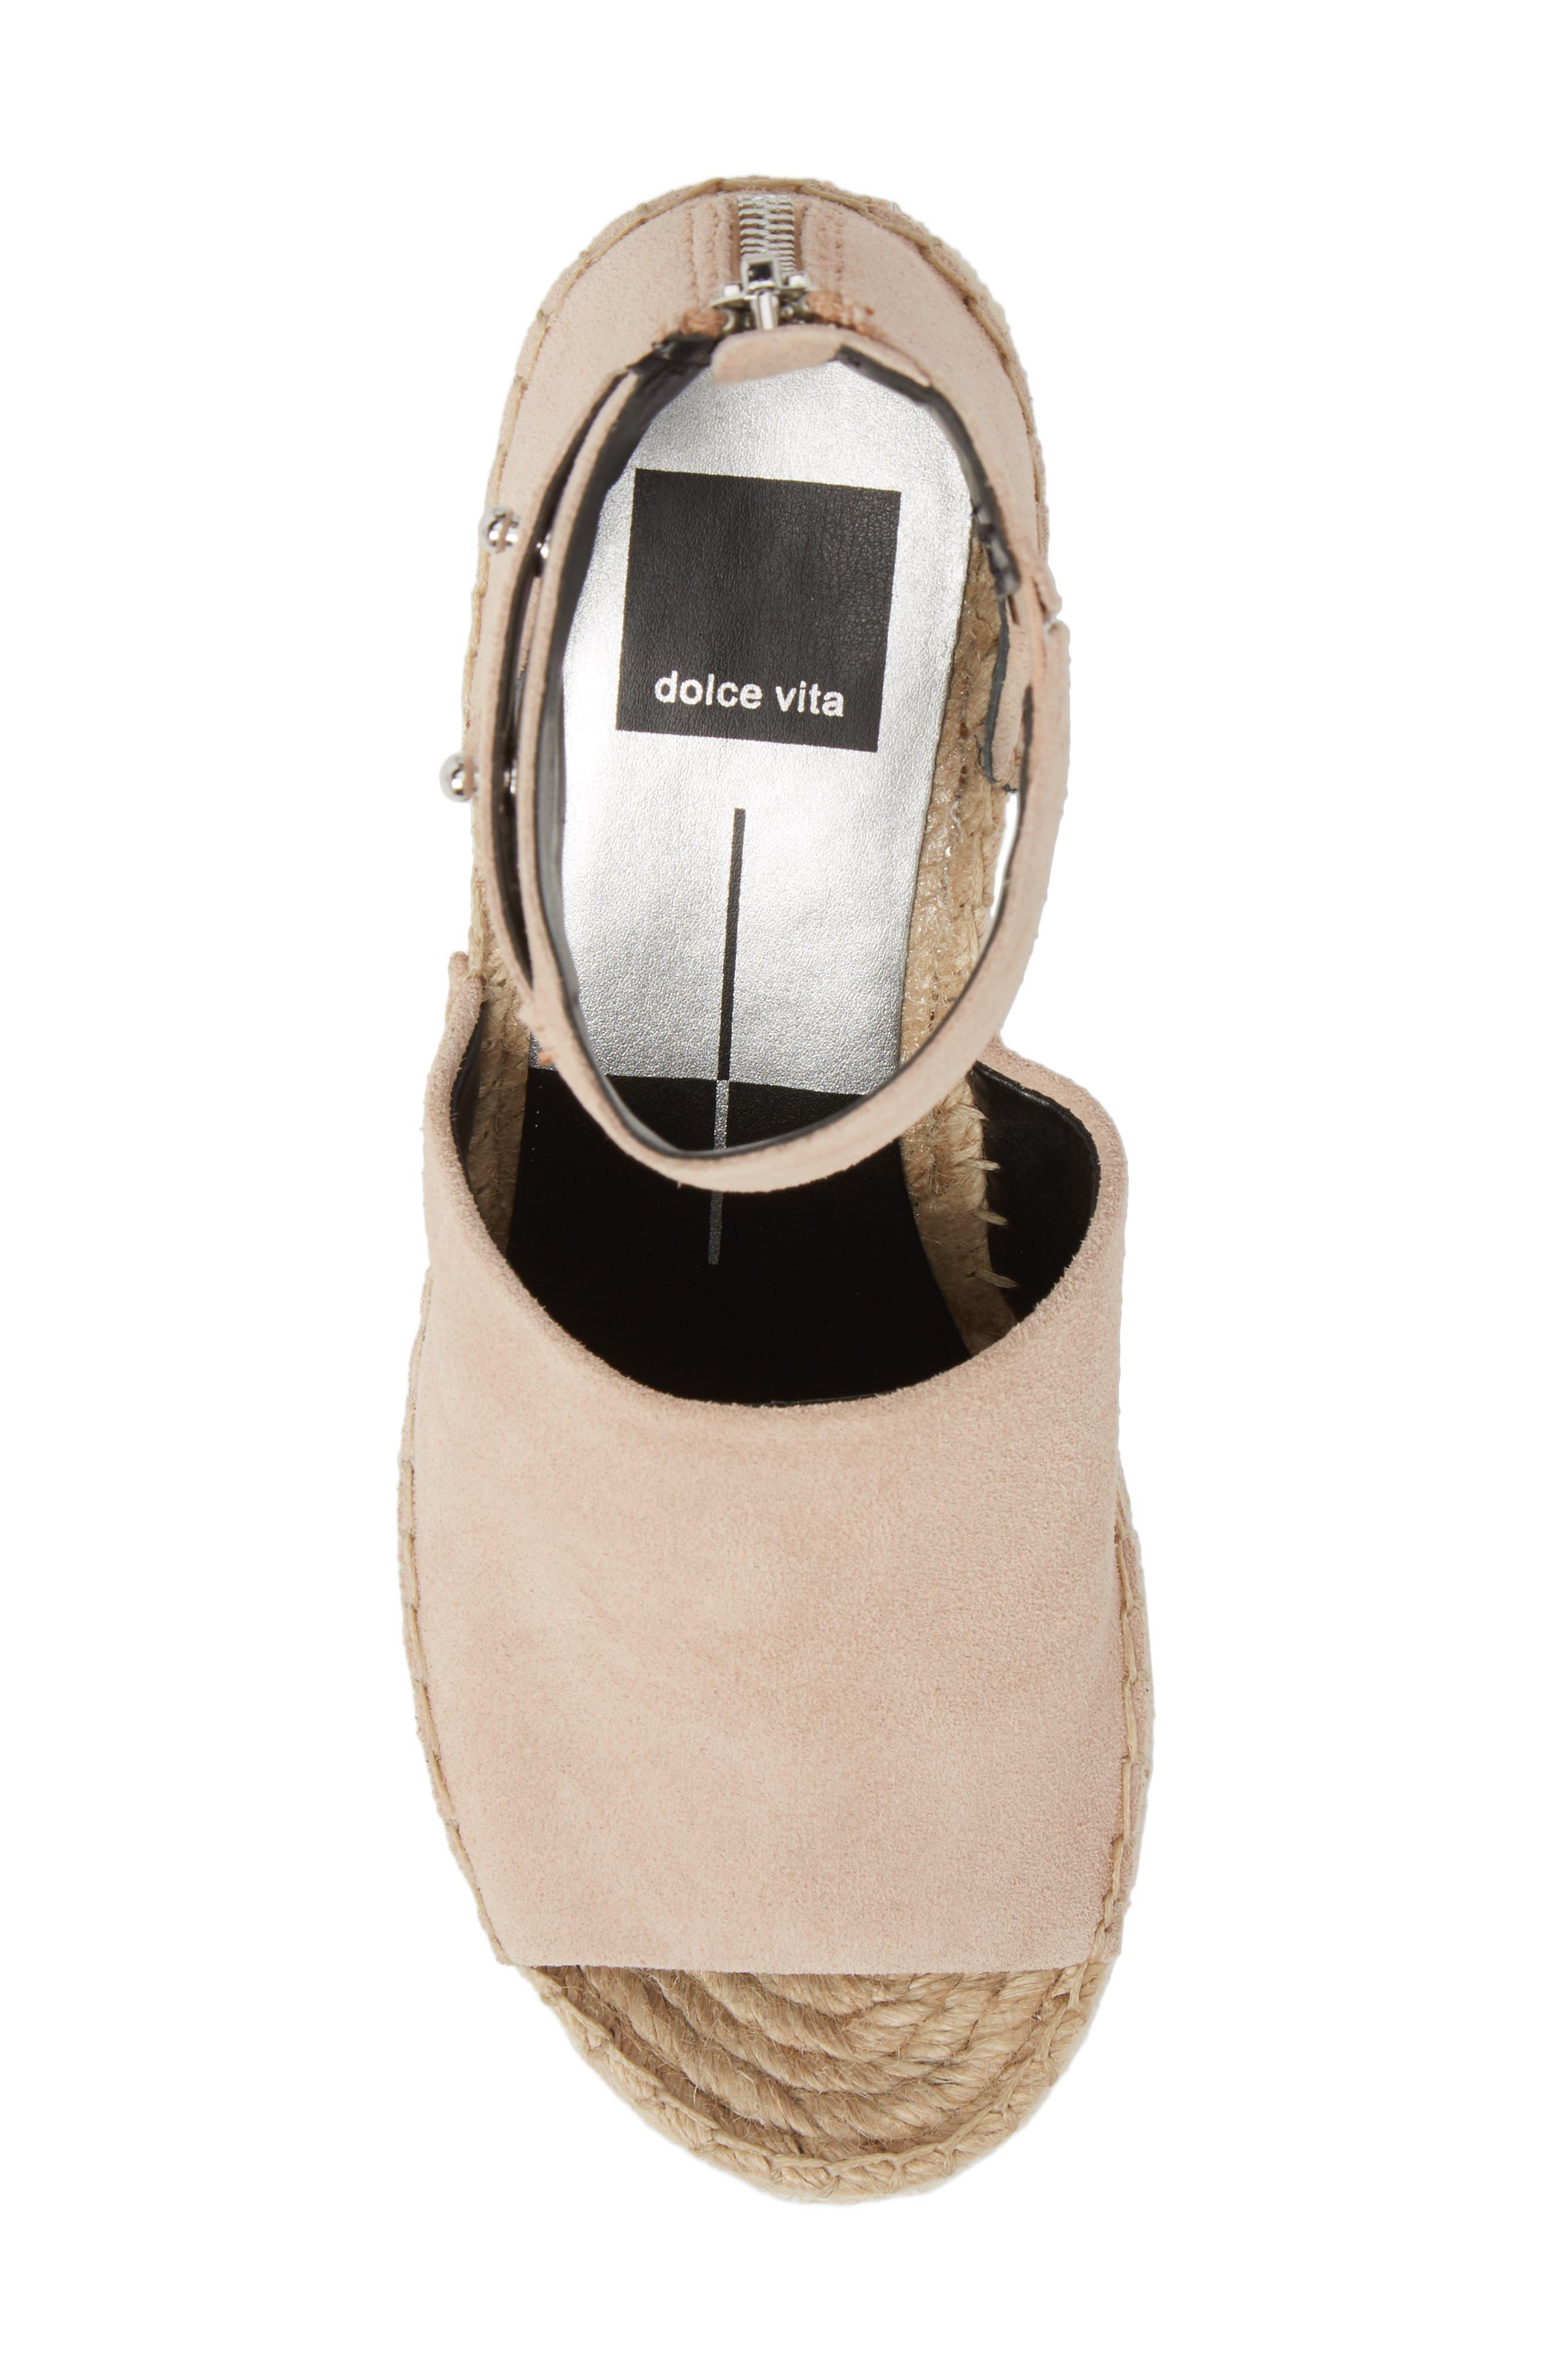 DOLCE VITA, Straw Wedge Espadrille Sandal, Alternate thumbnail 5, color, BLUSH